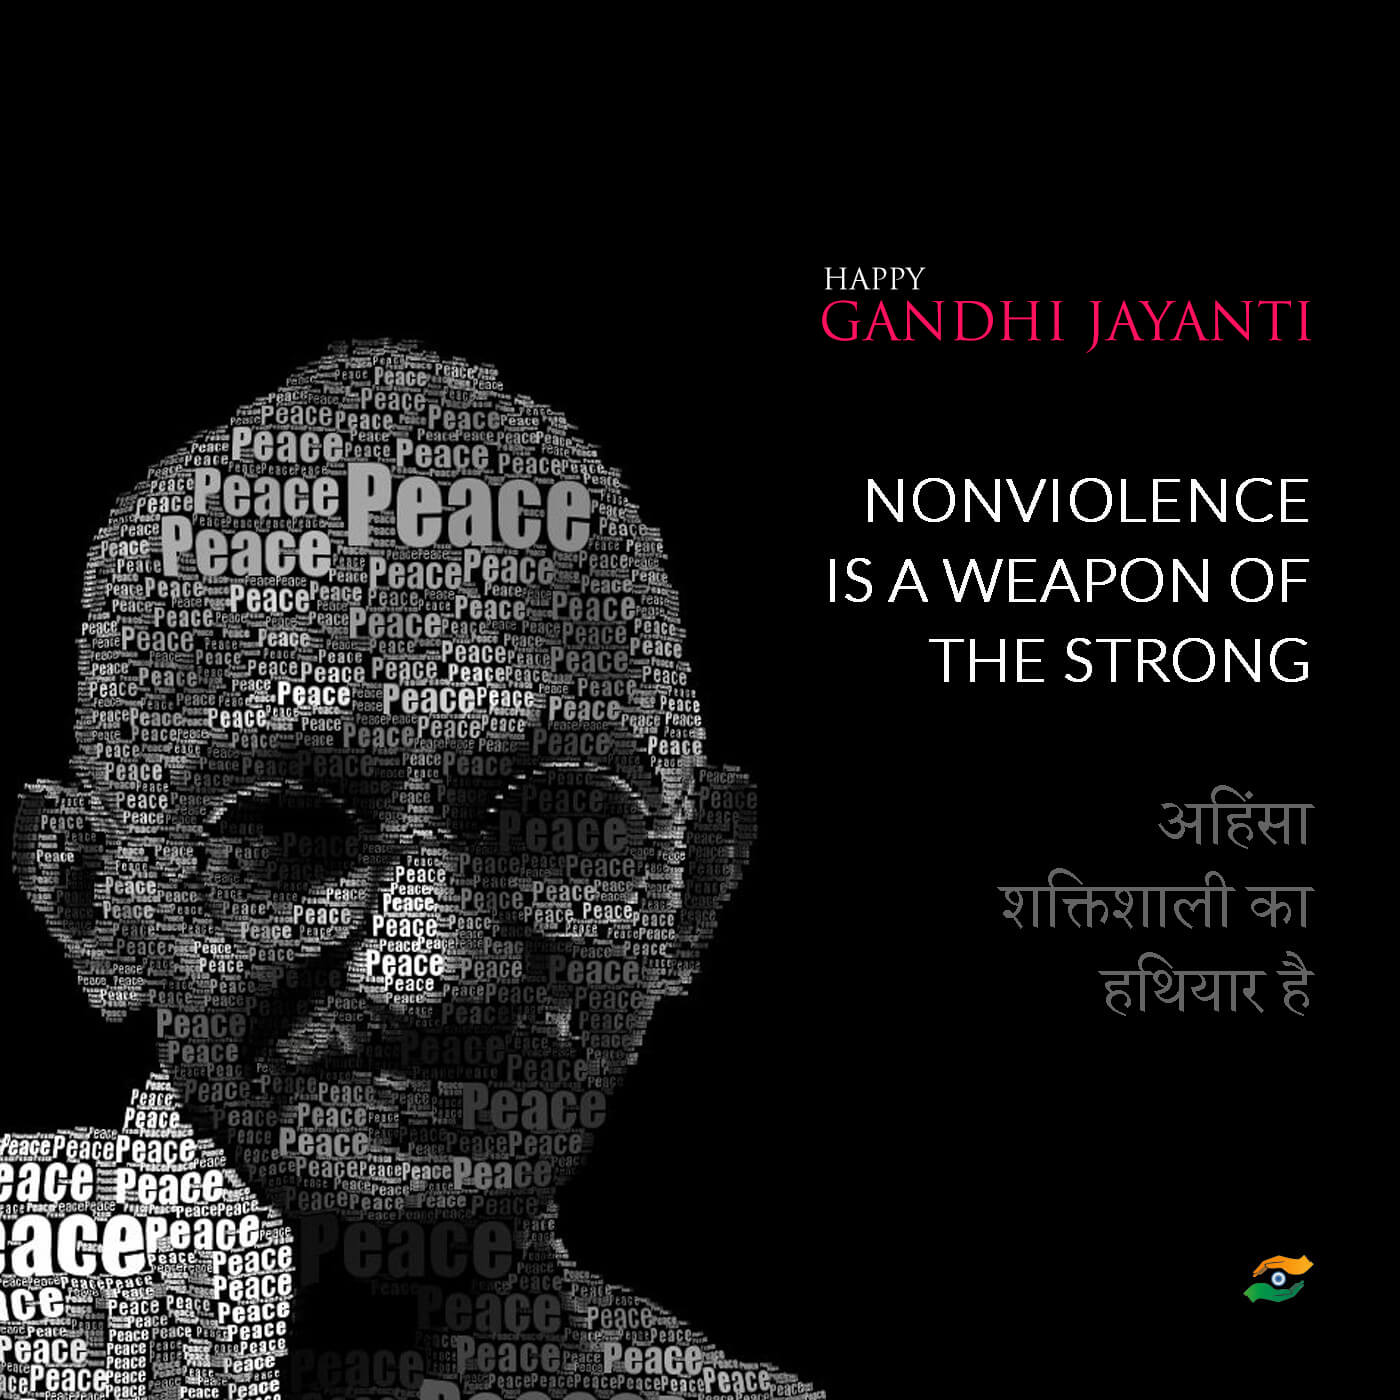 gandhi jayanti wallpapers free download